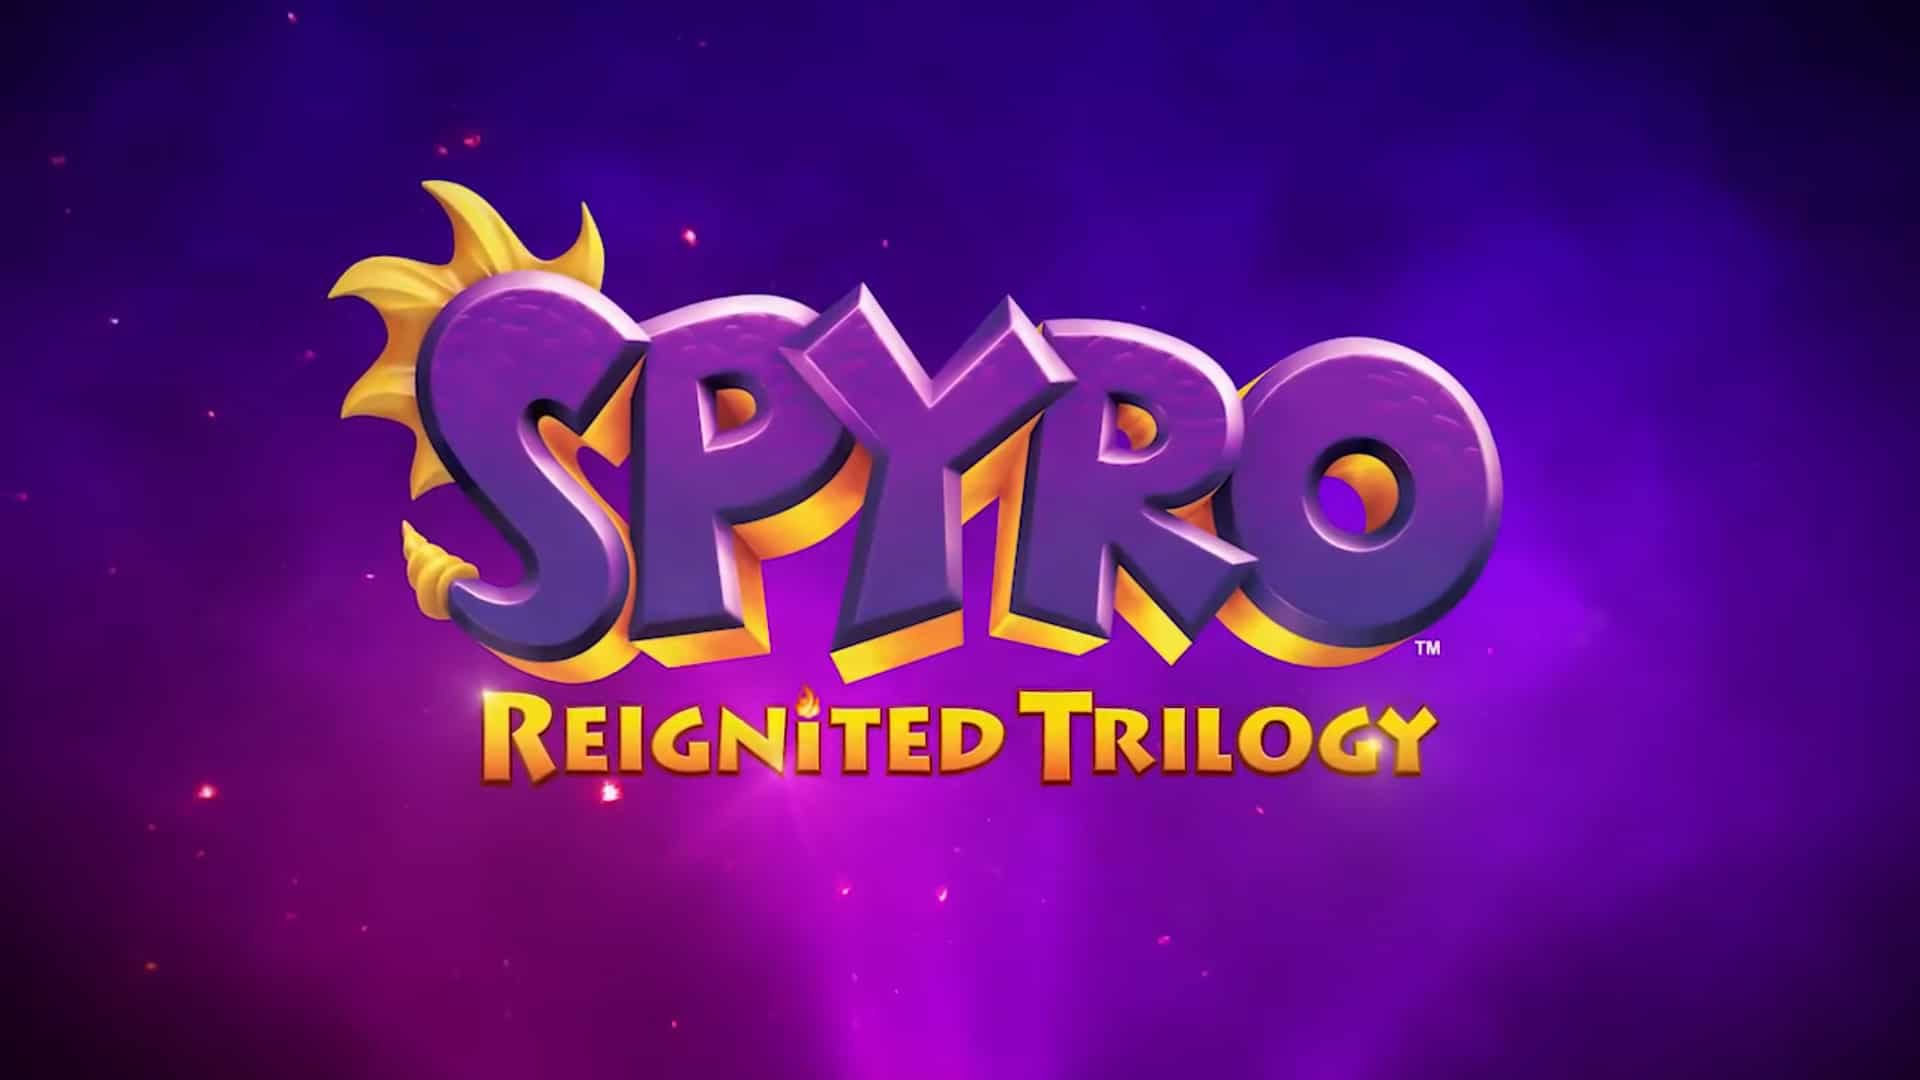 Spyro Reignited Trilogy Glides Over To Nintendo Switch And PC This Summer